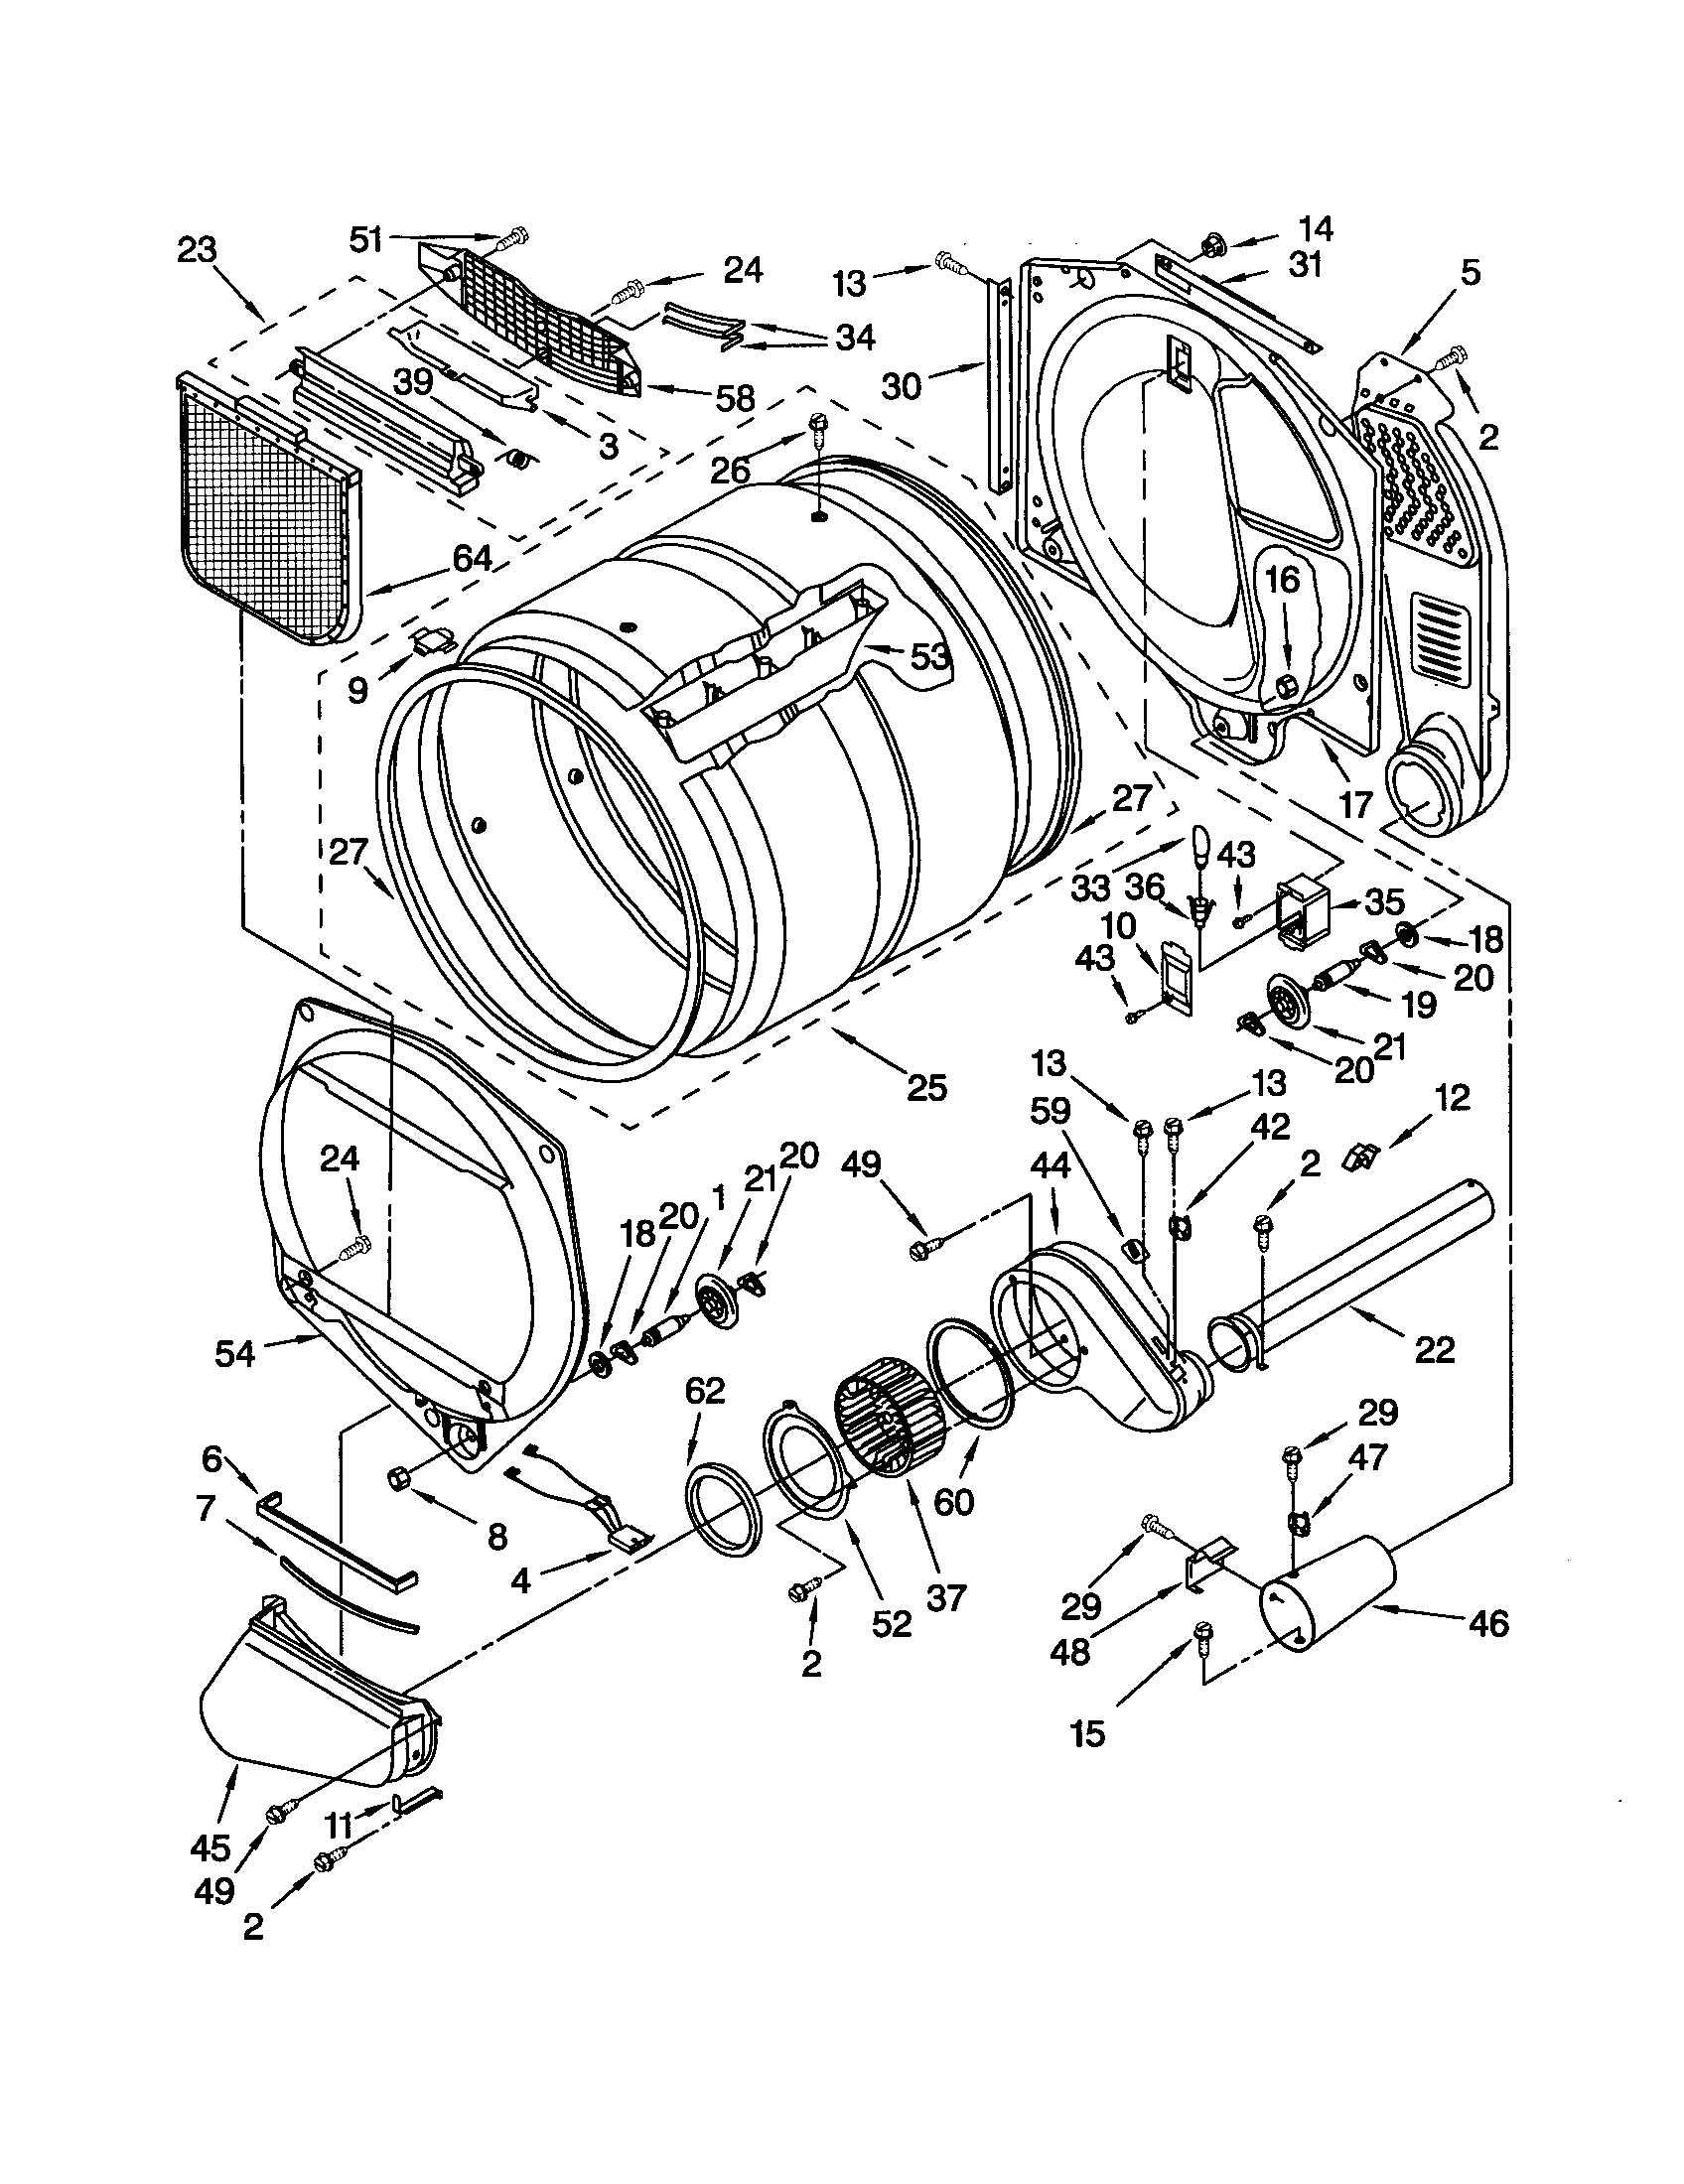 ge gas dryer diagram ch 1849  kenmore gas dryer parts diagram wiring diagram  kenmore gas dryer parts diagram wiring